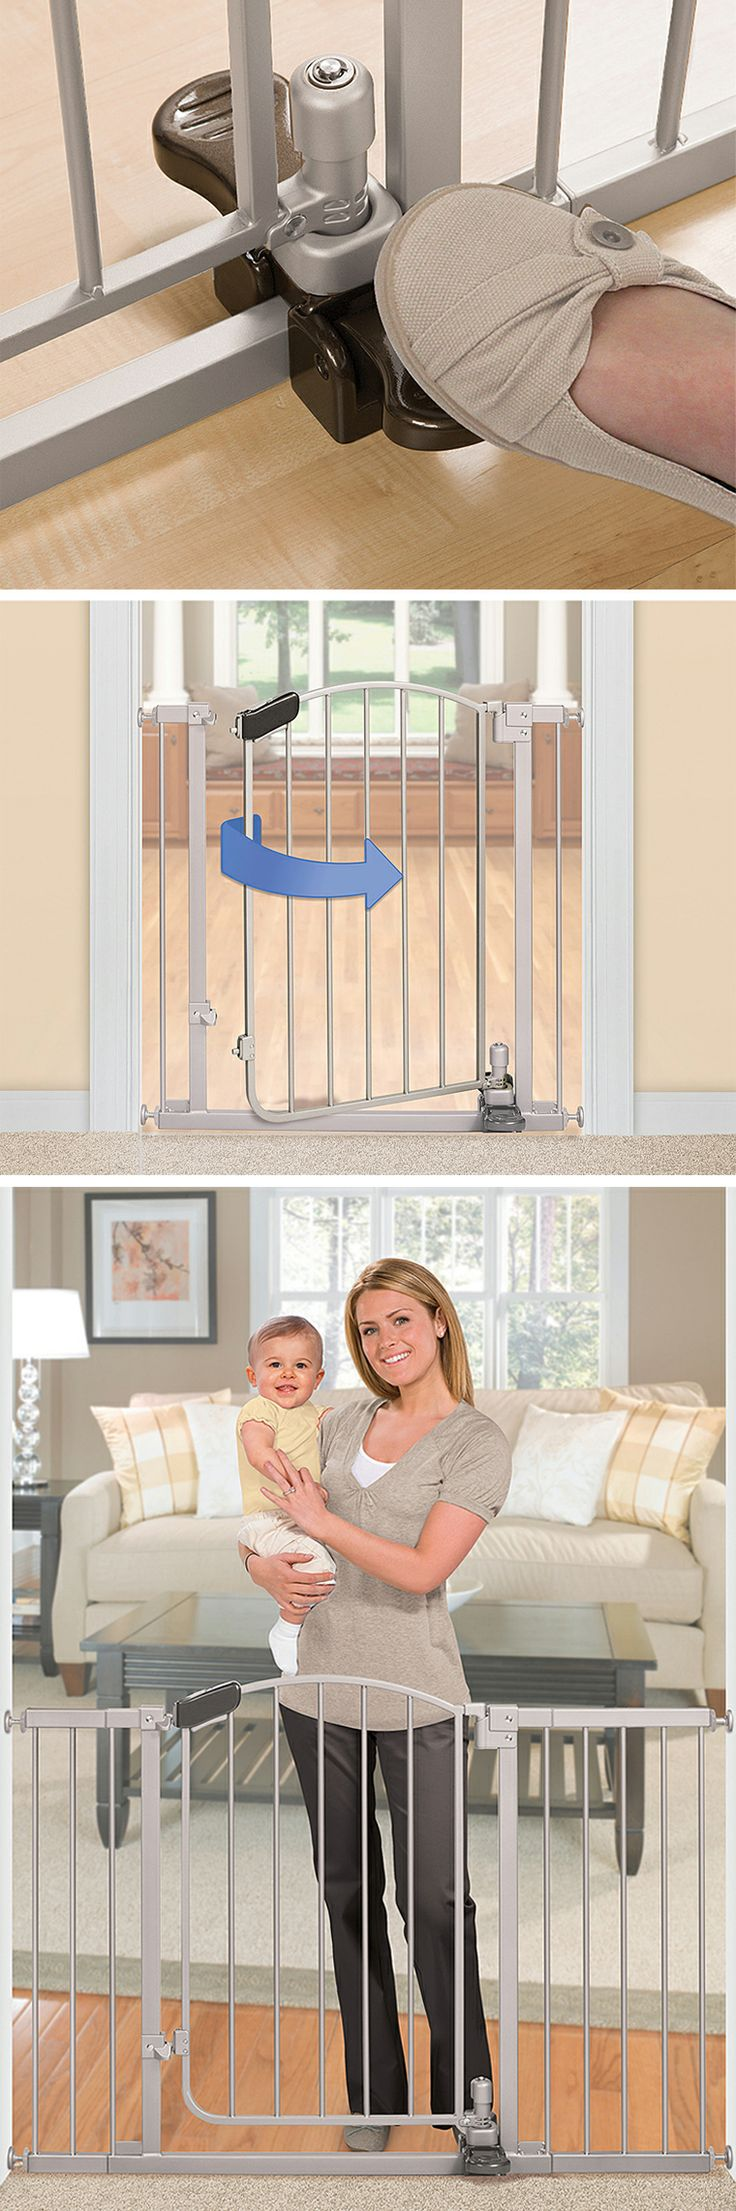 Hands free step-to-open child safety gate // finally, a smart product for a mama who has both hands full! More hygienic, too. Clever. #product_design